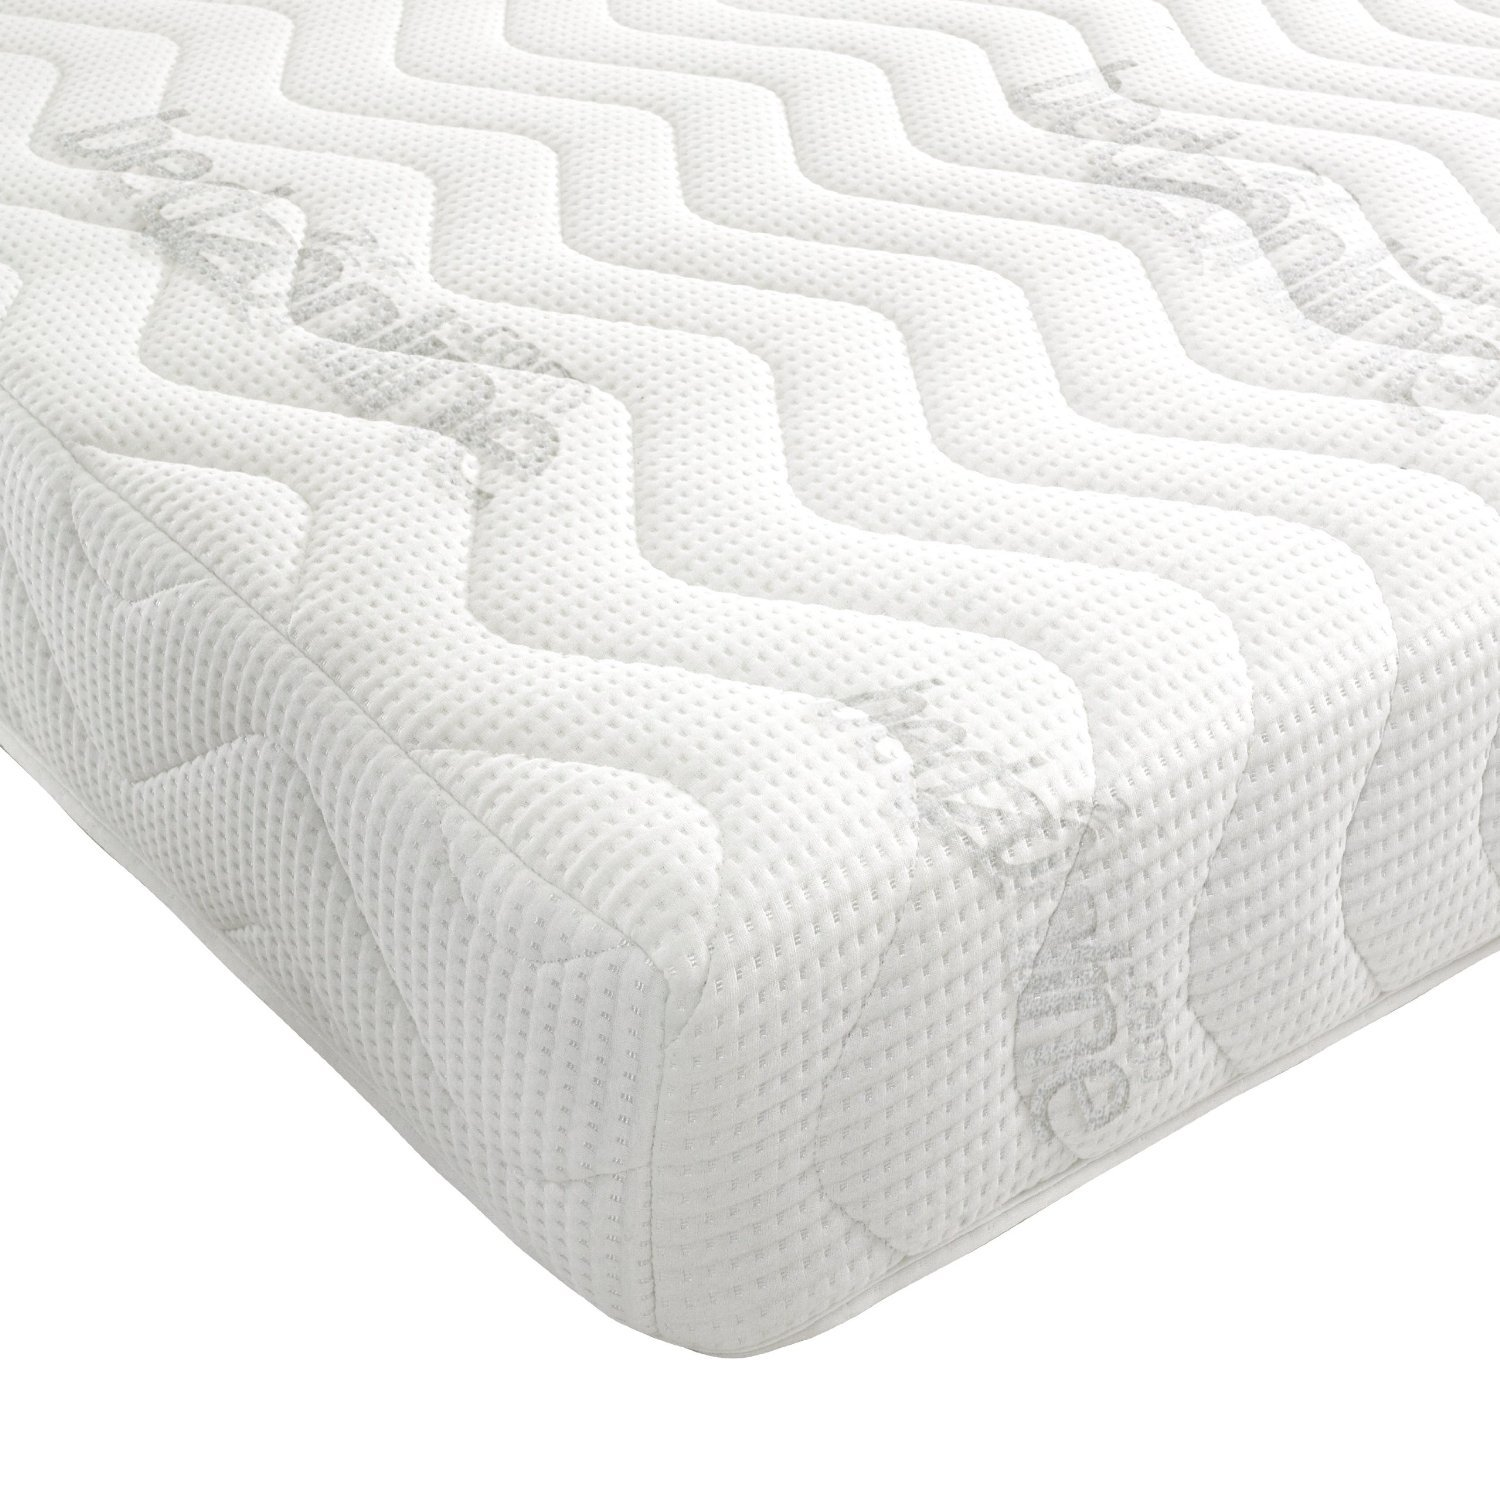 Who Sells Natura Green Spring Liberty Ultra Plush Mattress Queen The Cheapest